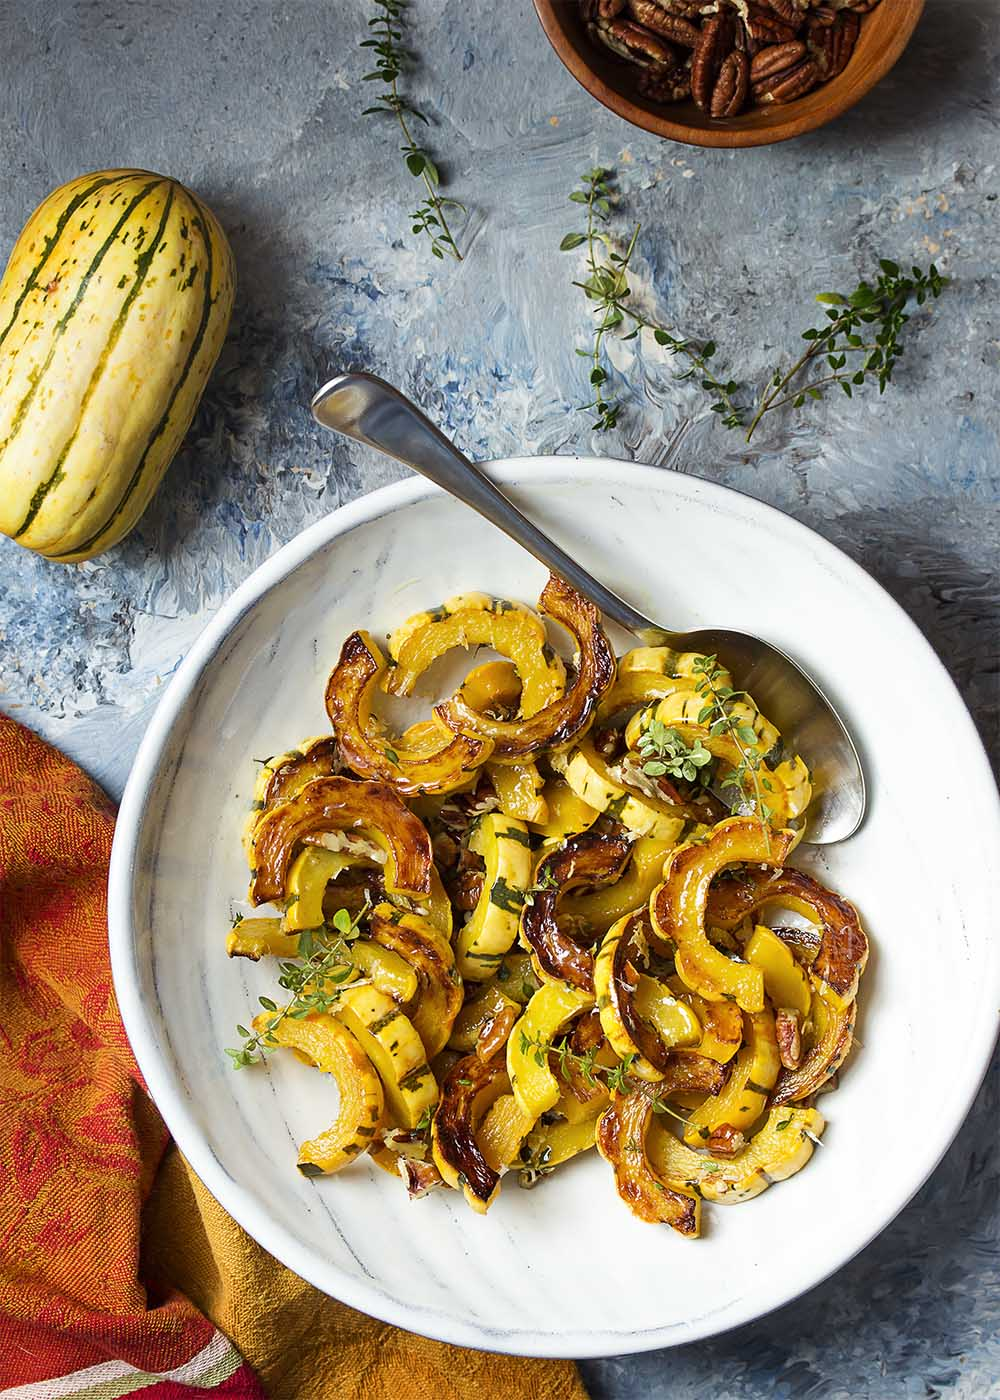 Top view of a serving bowl filled with roasted delicata squash, fresh thyme leaves, pecans.